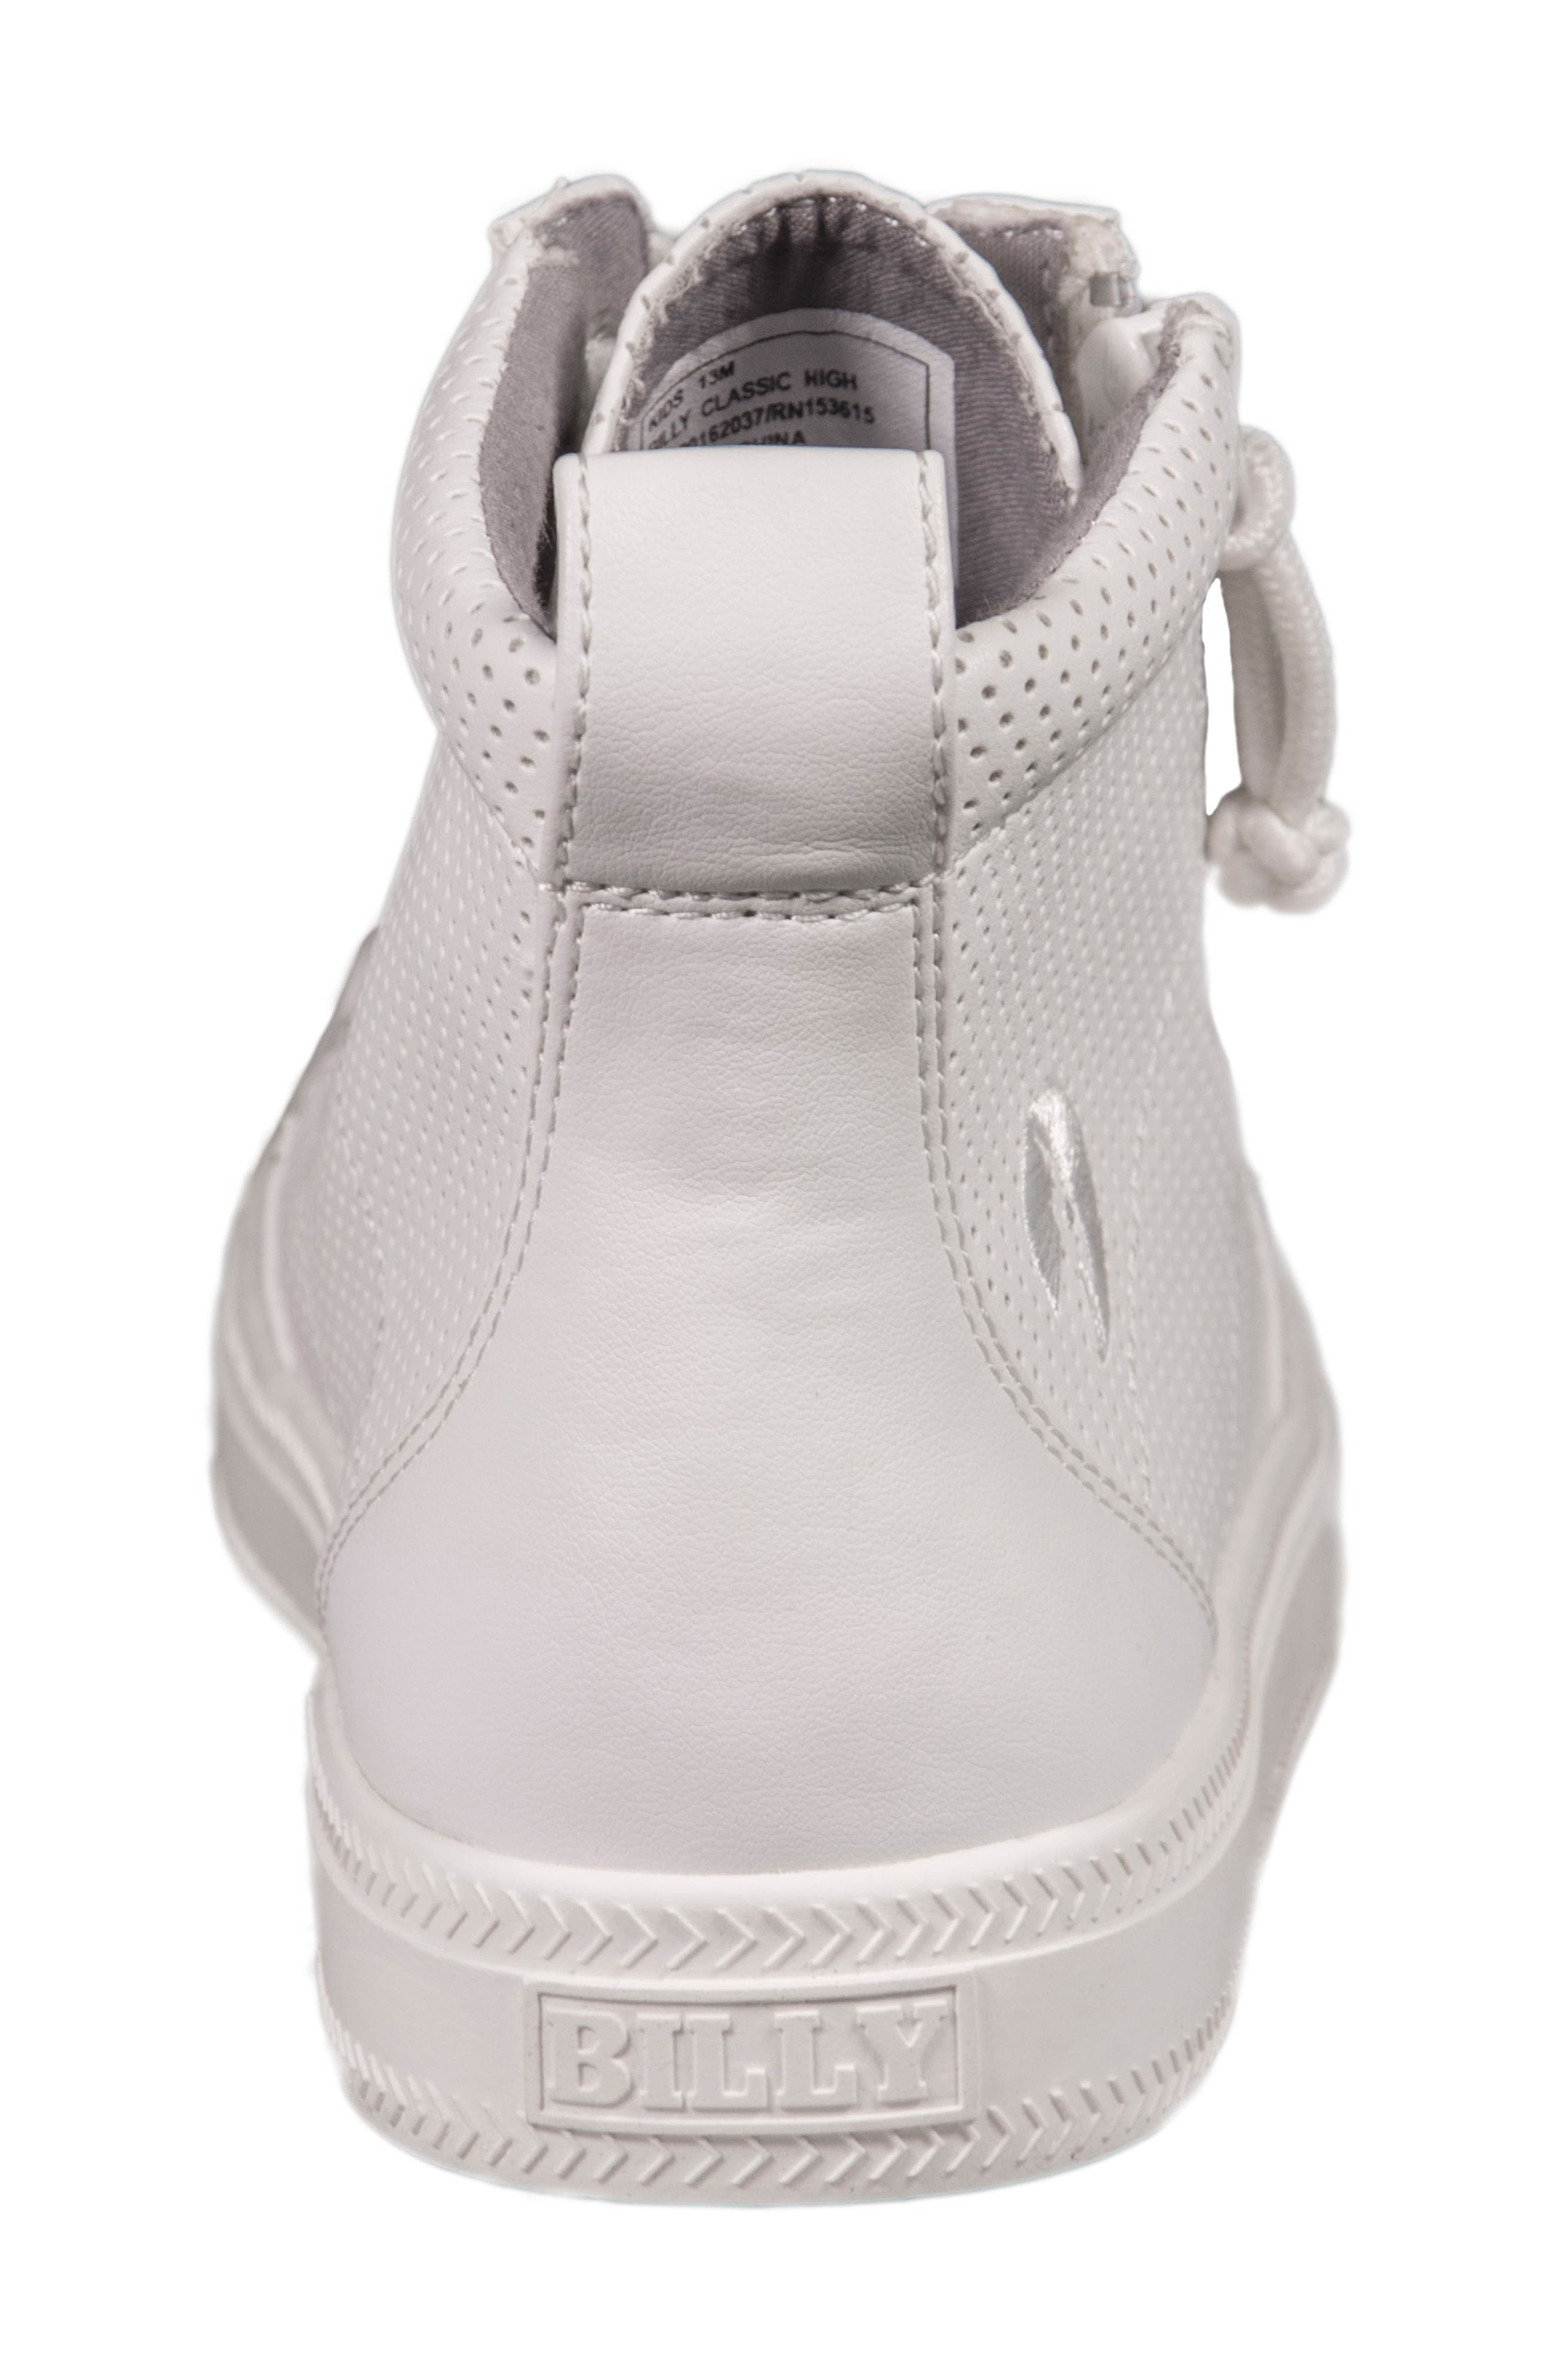 Zip Around Perforated High Top Sneaker,                             Alternate thumbnail 7, color,                             White Perforated